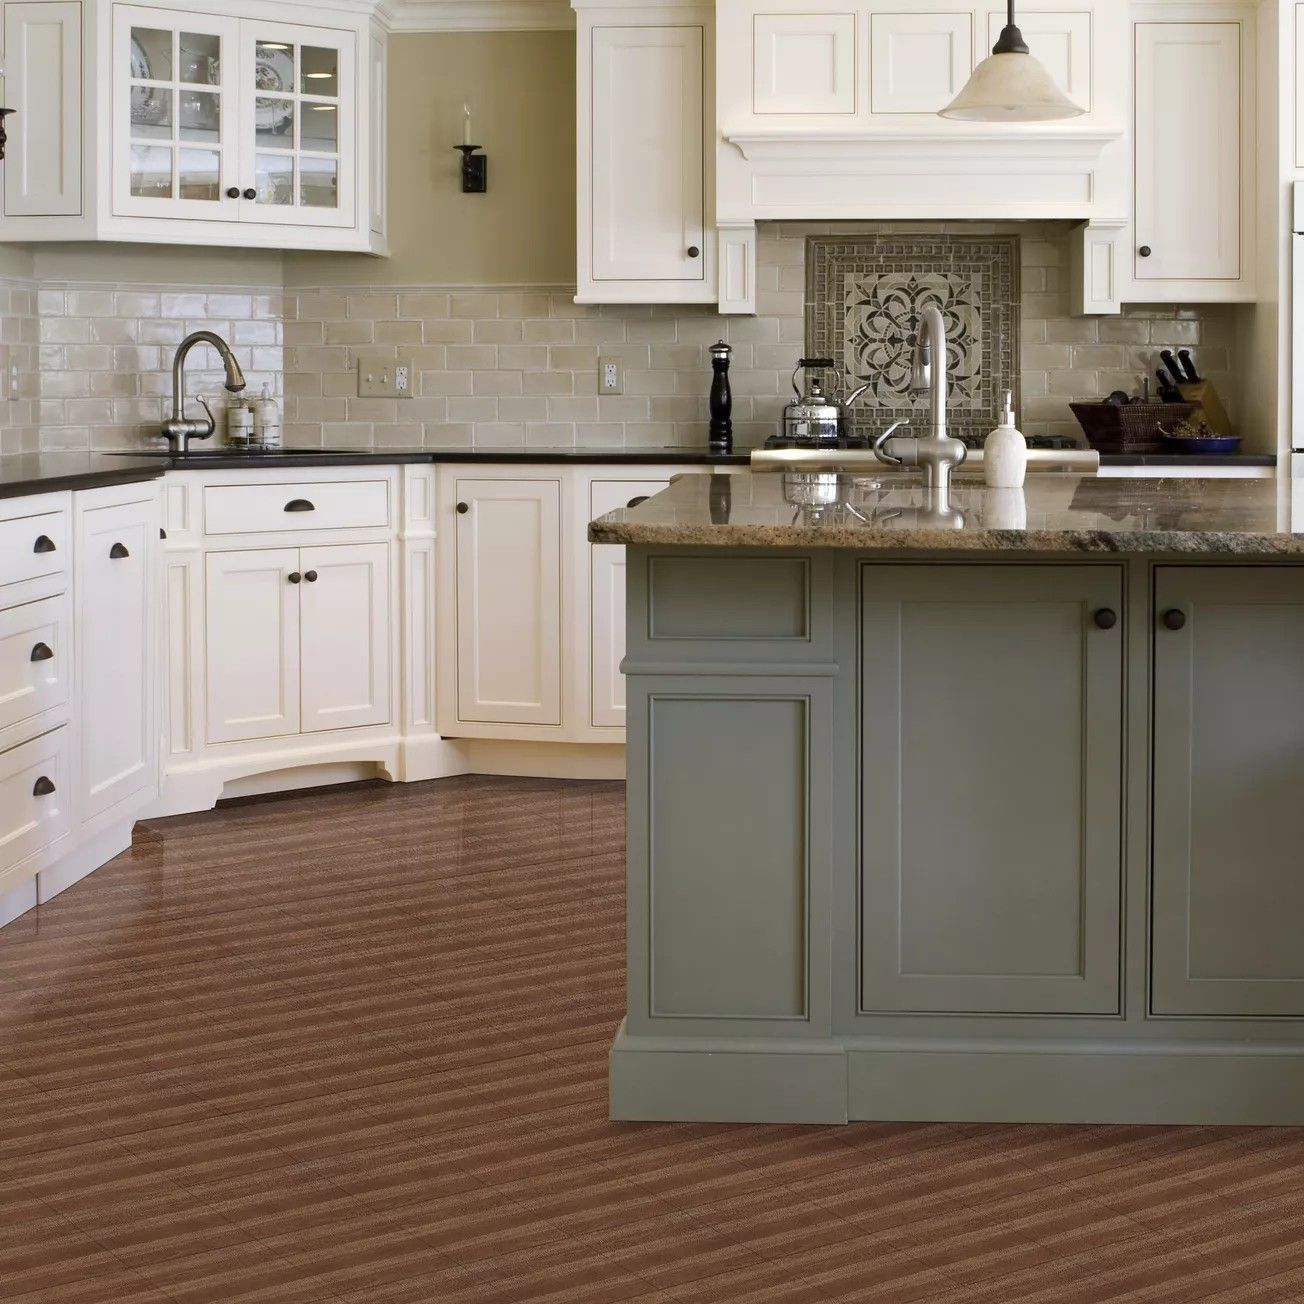 Pin by Suzanne Dood on Kitchens in 2020 Vinyl tile